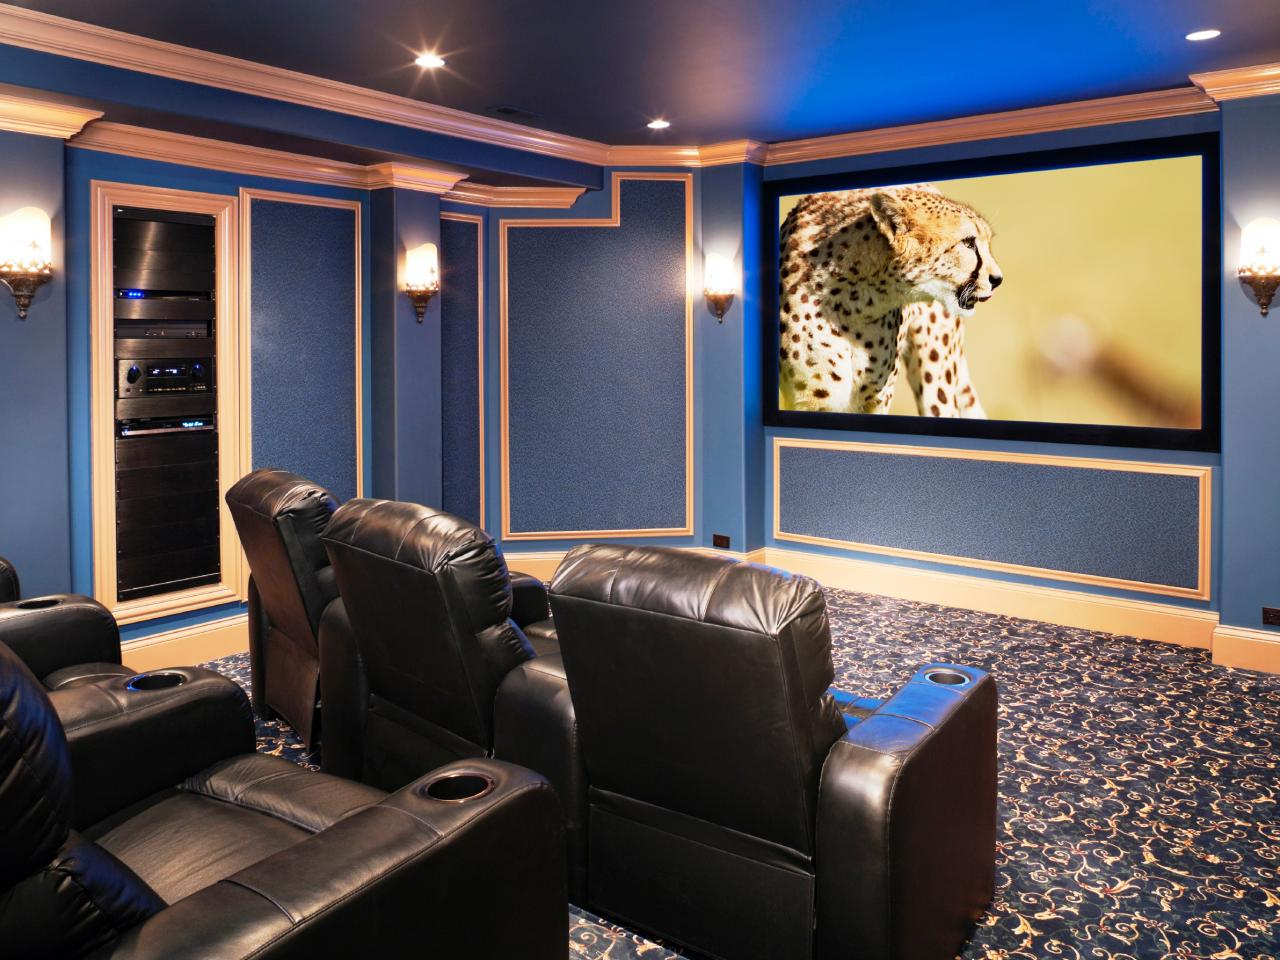 Maximum value technology projects theater hgtv Home theater colors